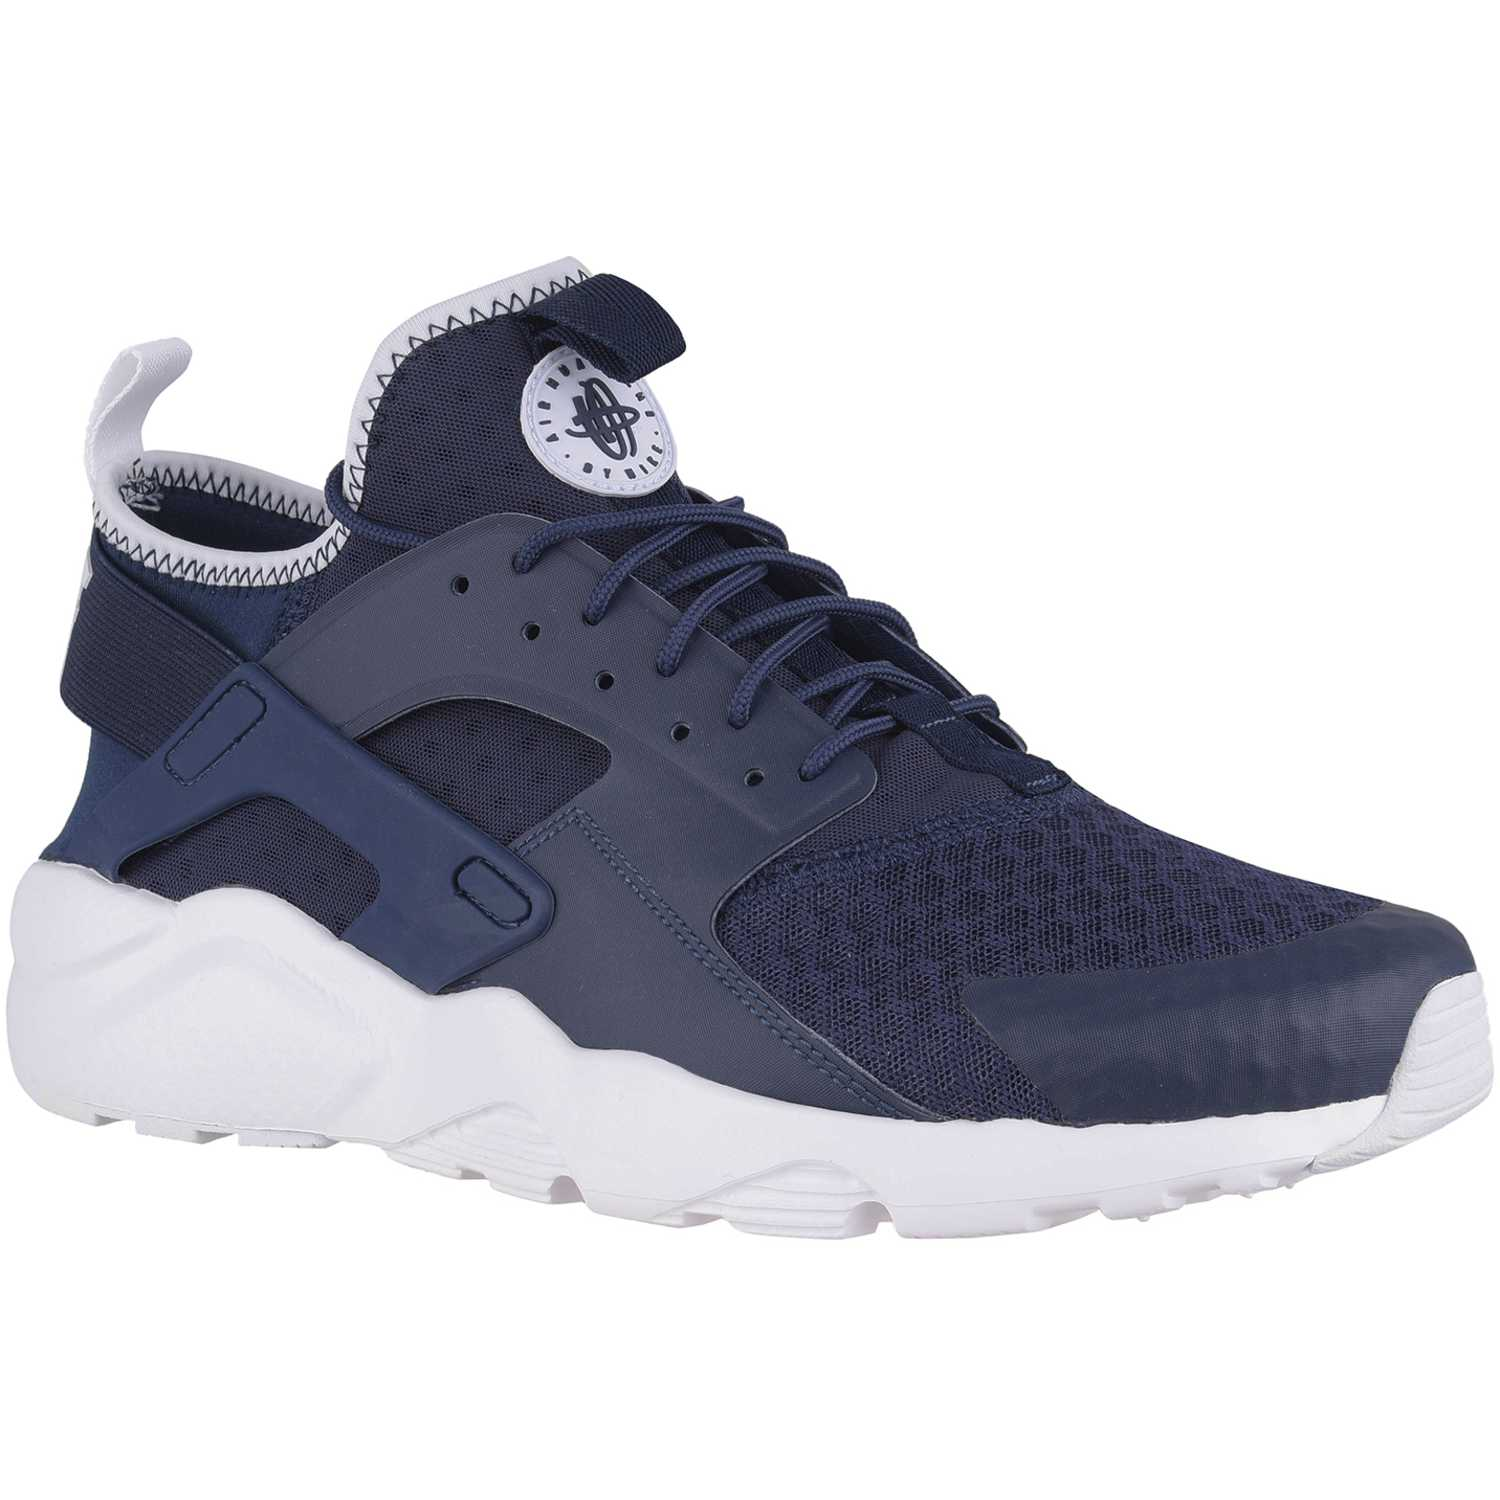 detailed look 04059 2ebfe Zapatilla de Hombre Nike Azul   blanco air huarache run ultra